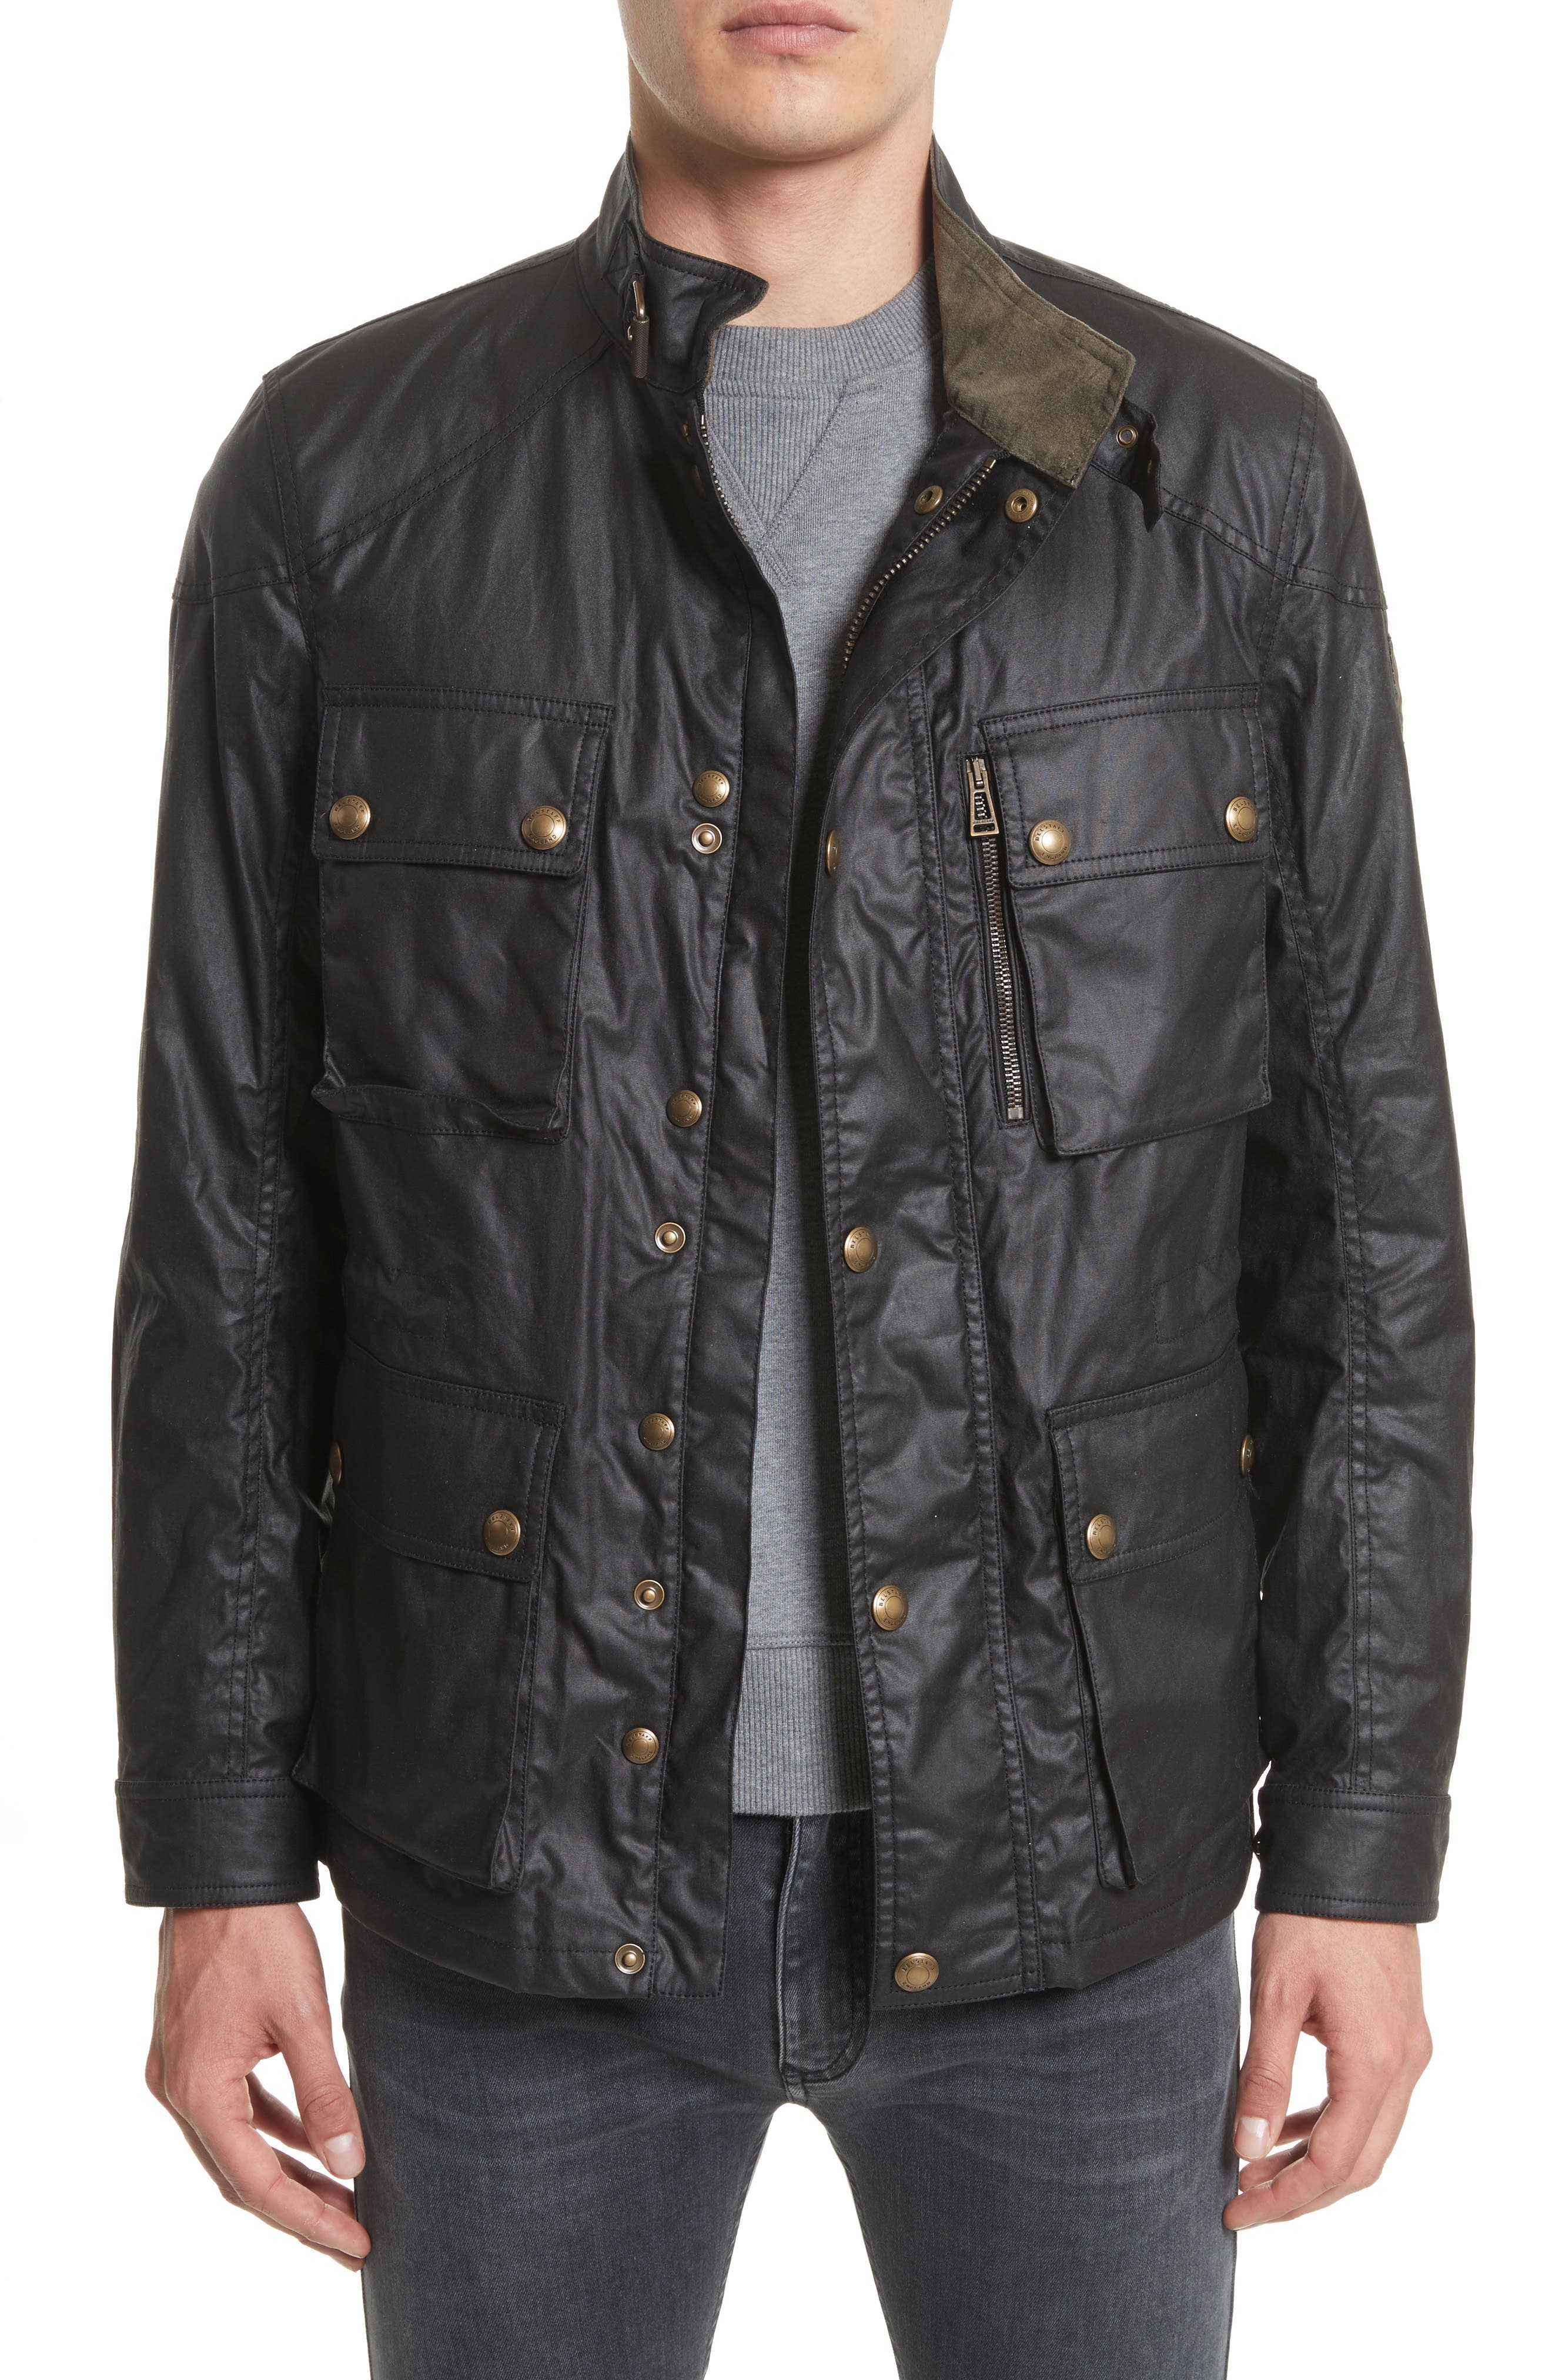 Alternate Image 1 Selected - Belstaff 'Trialmaster 2015' Waxed Cotton Jacket